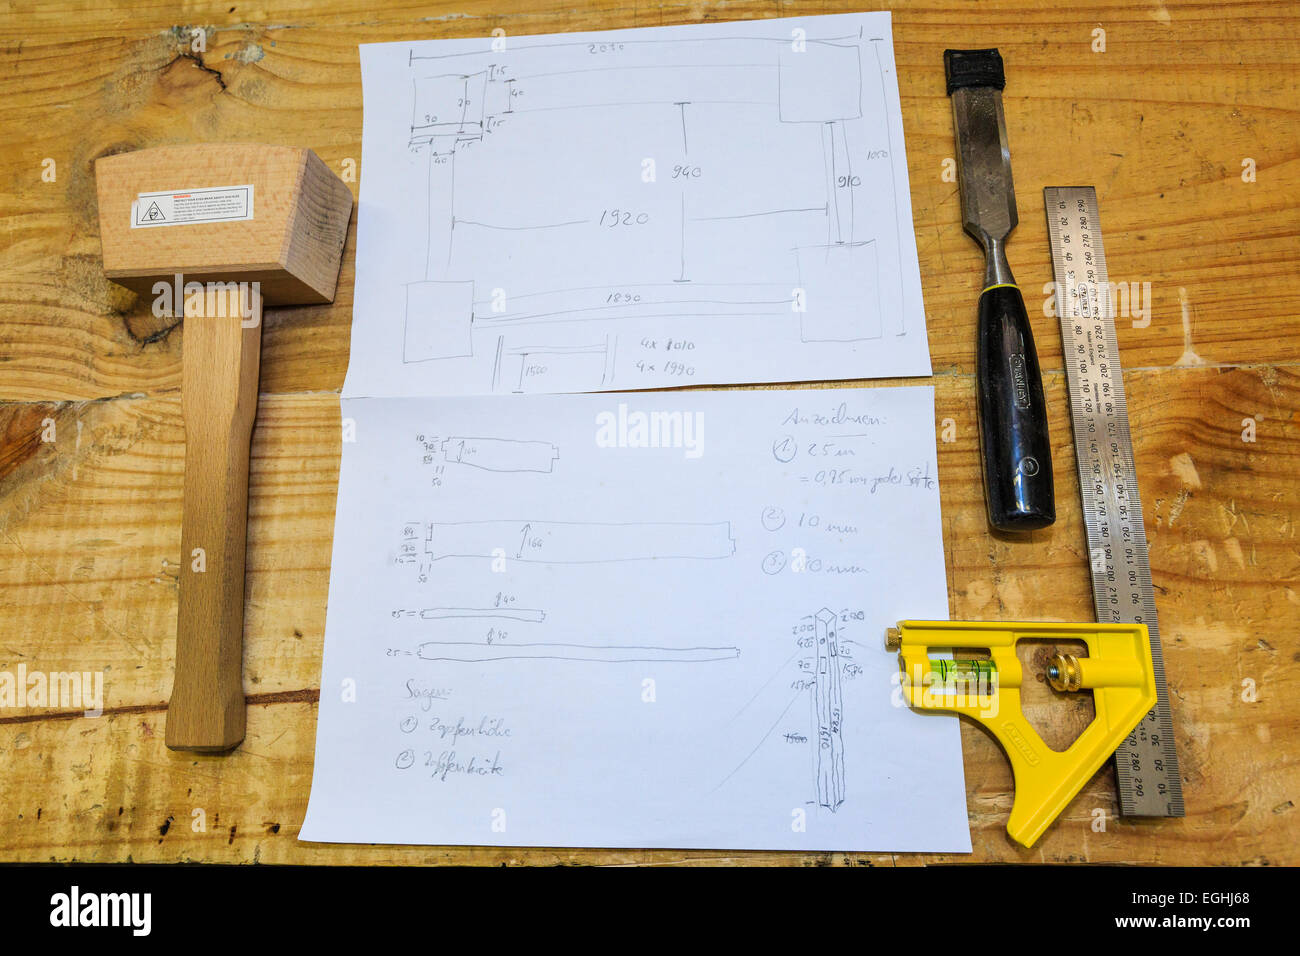 Woodworking tools and a construction plan - Stock Image